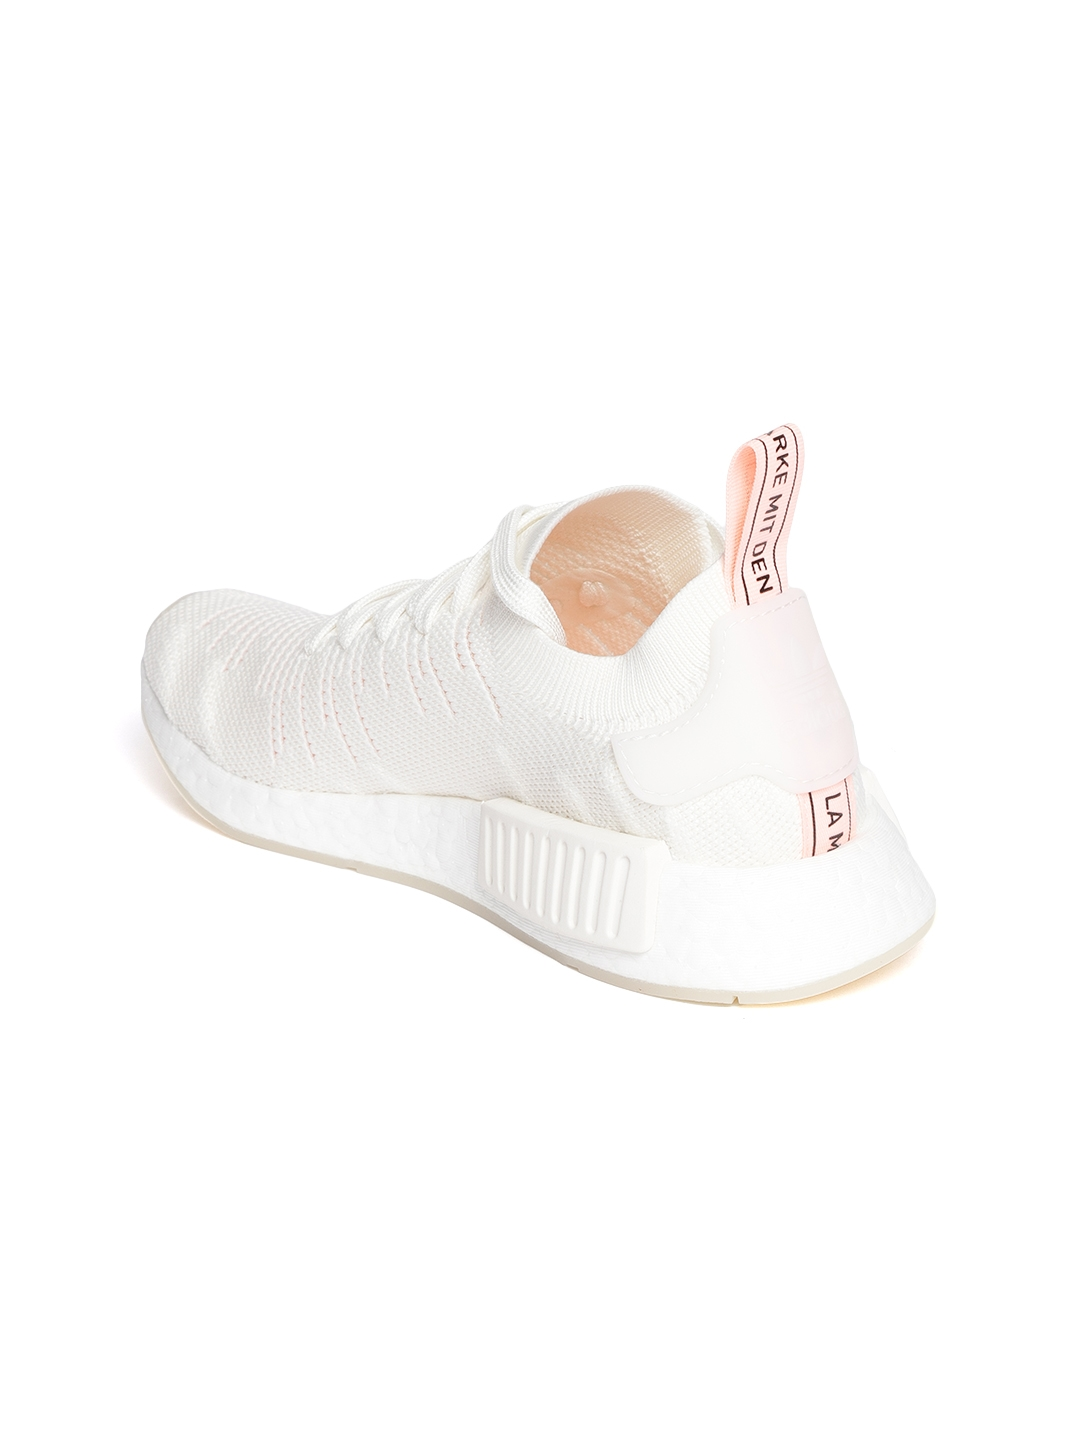 new style 3309d cd496 ADIDAS Originals Women Off-White NMDR1 STLT Primeknit Sneakers